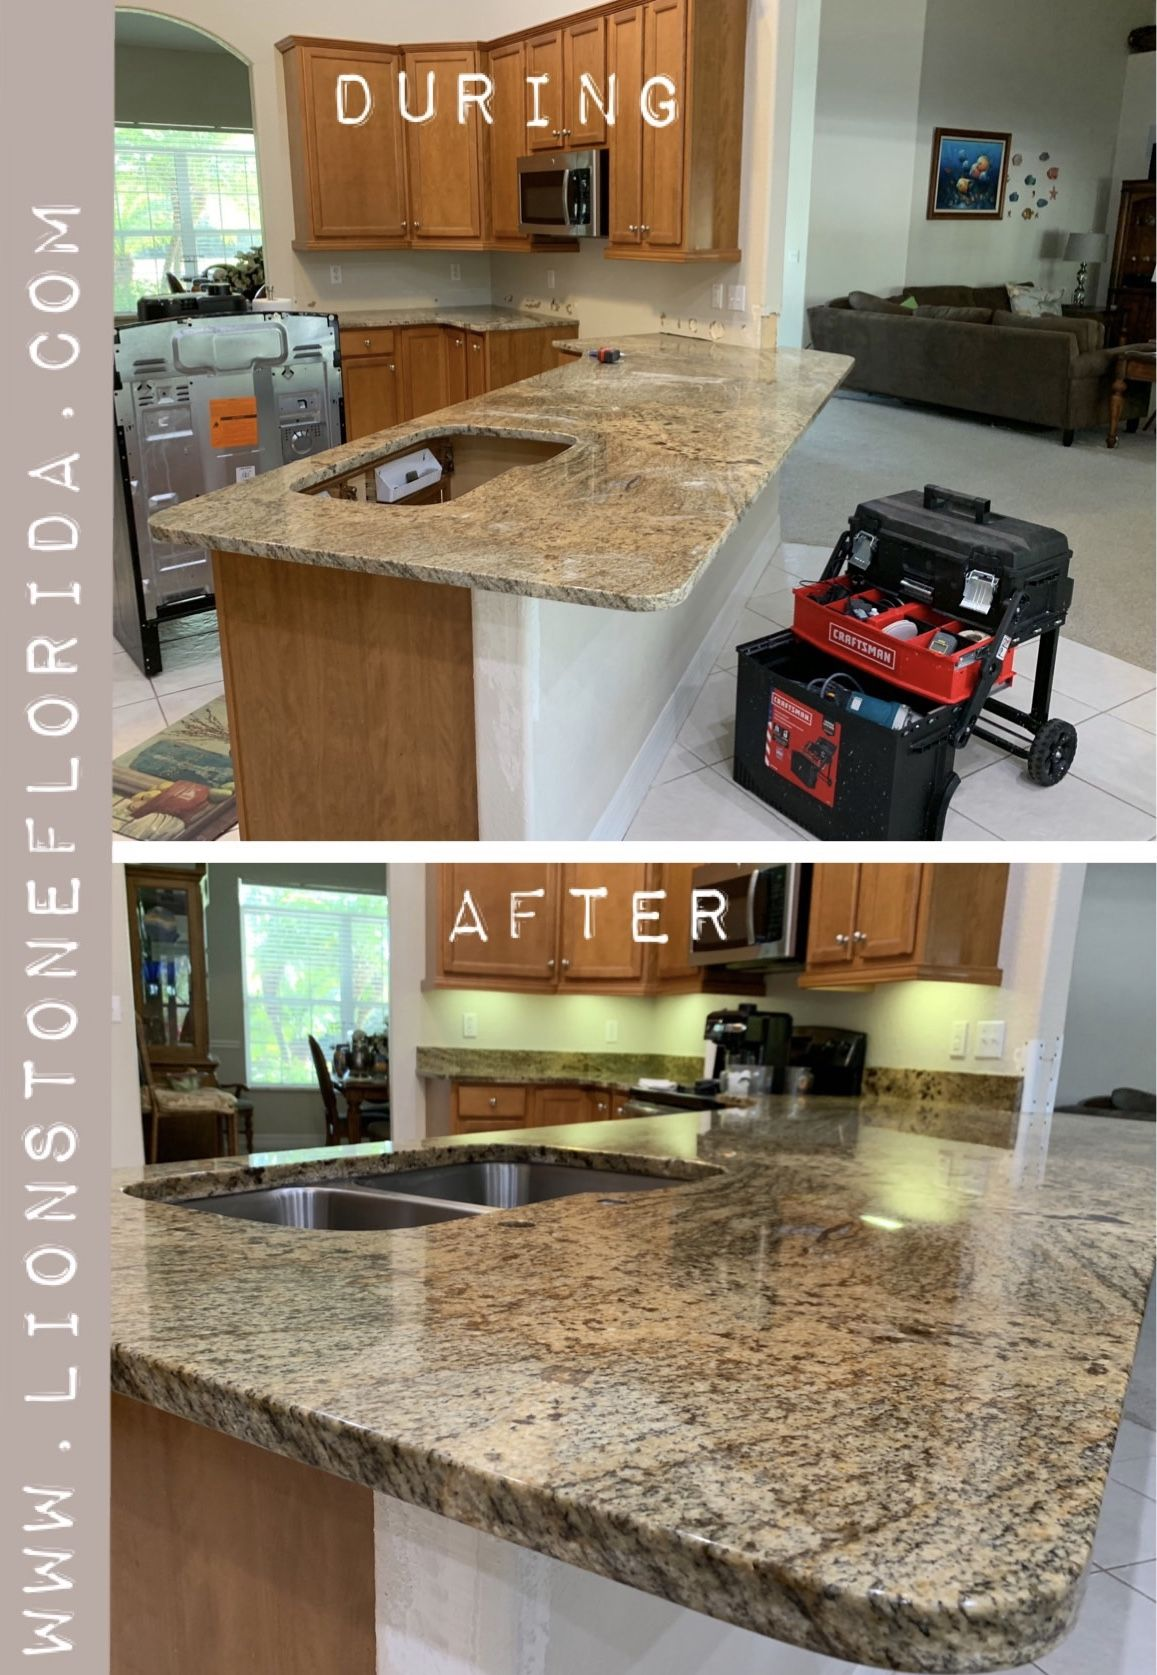 During The Process Of Granite Countertop Installation And After Completion Lions How To Install Countertops Installing Granite Countertops Granite Countertops